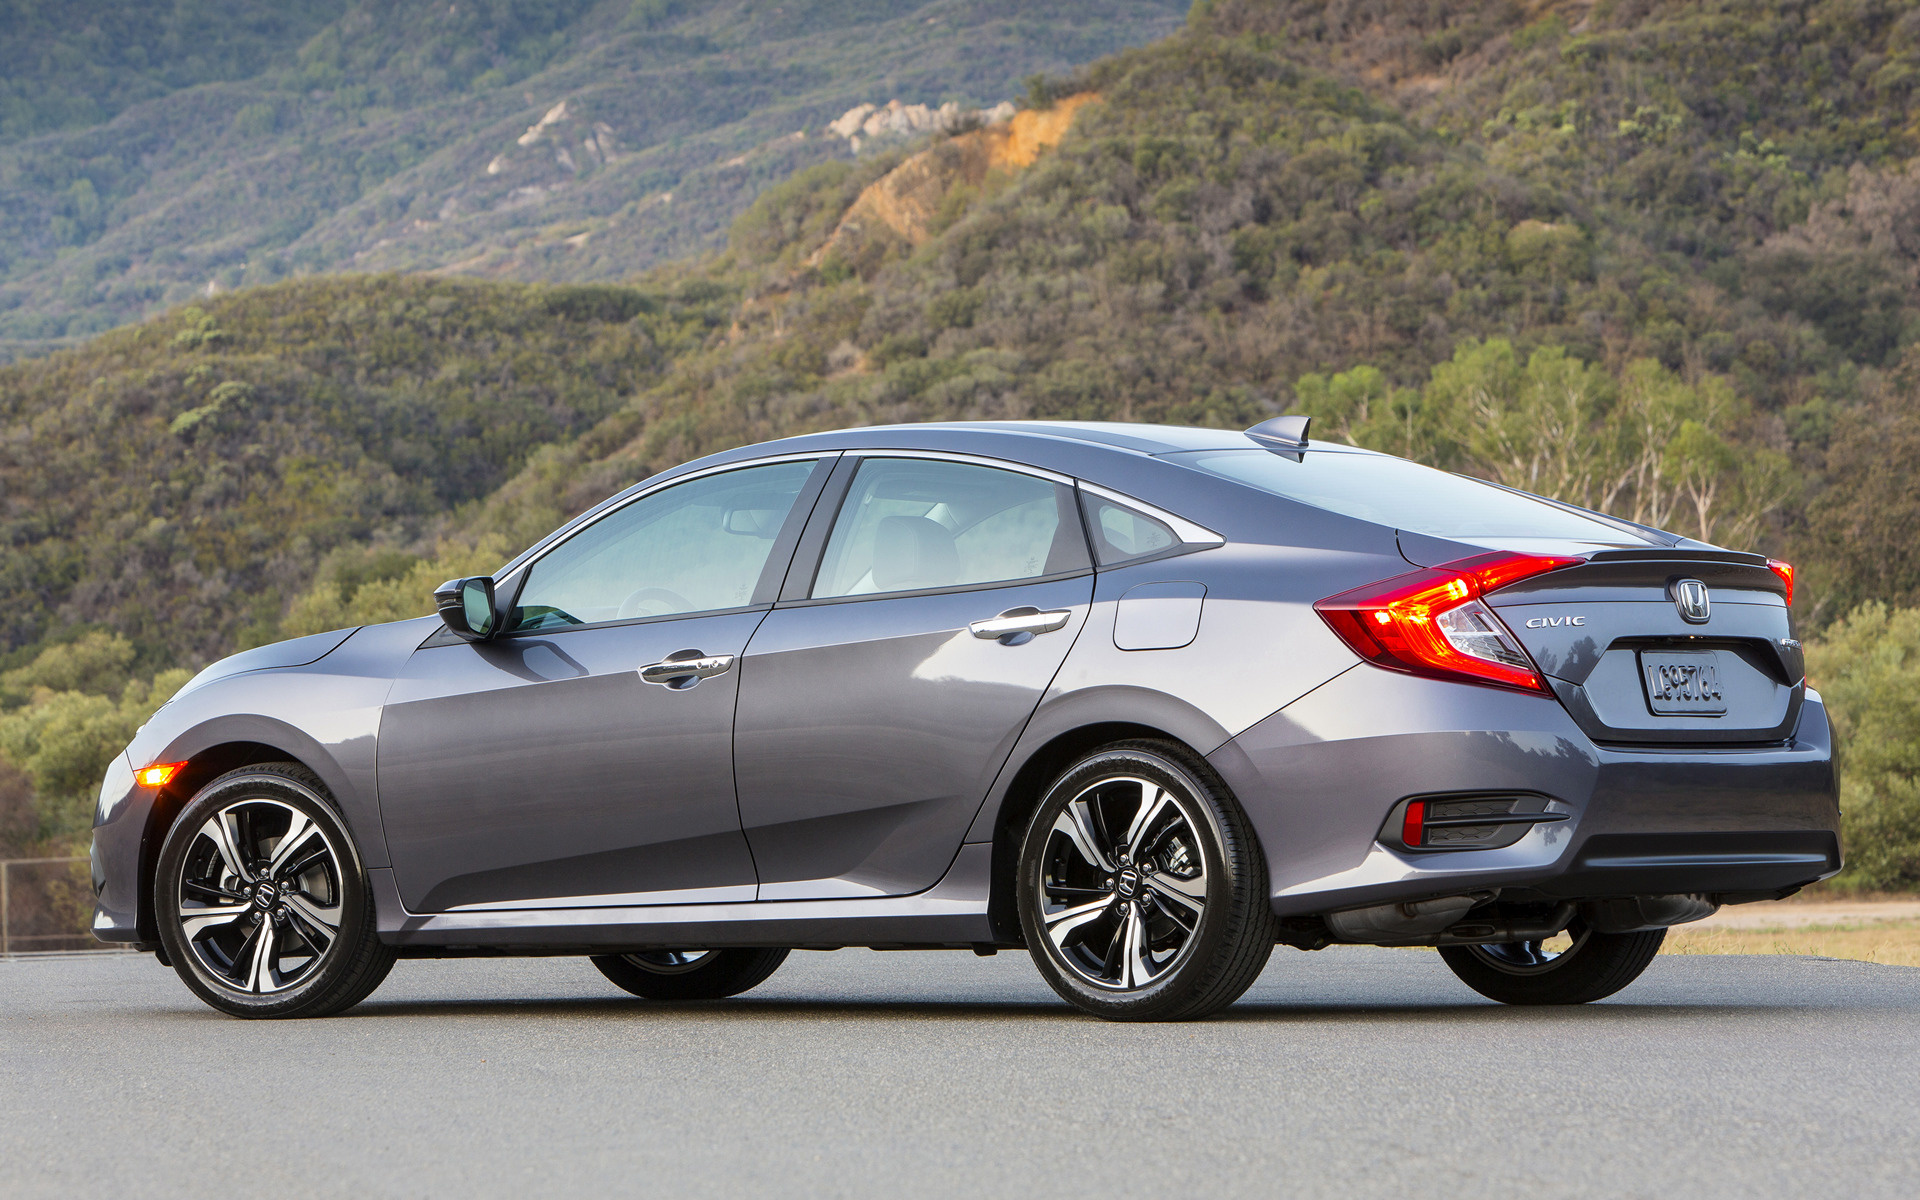 2016 Honda Civic Touring Sedan (US) - Wallpapers and HD Images | Car Pixel